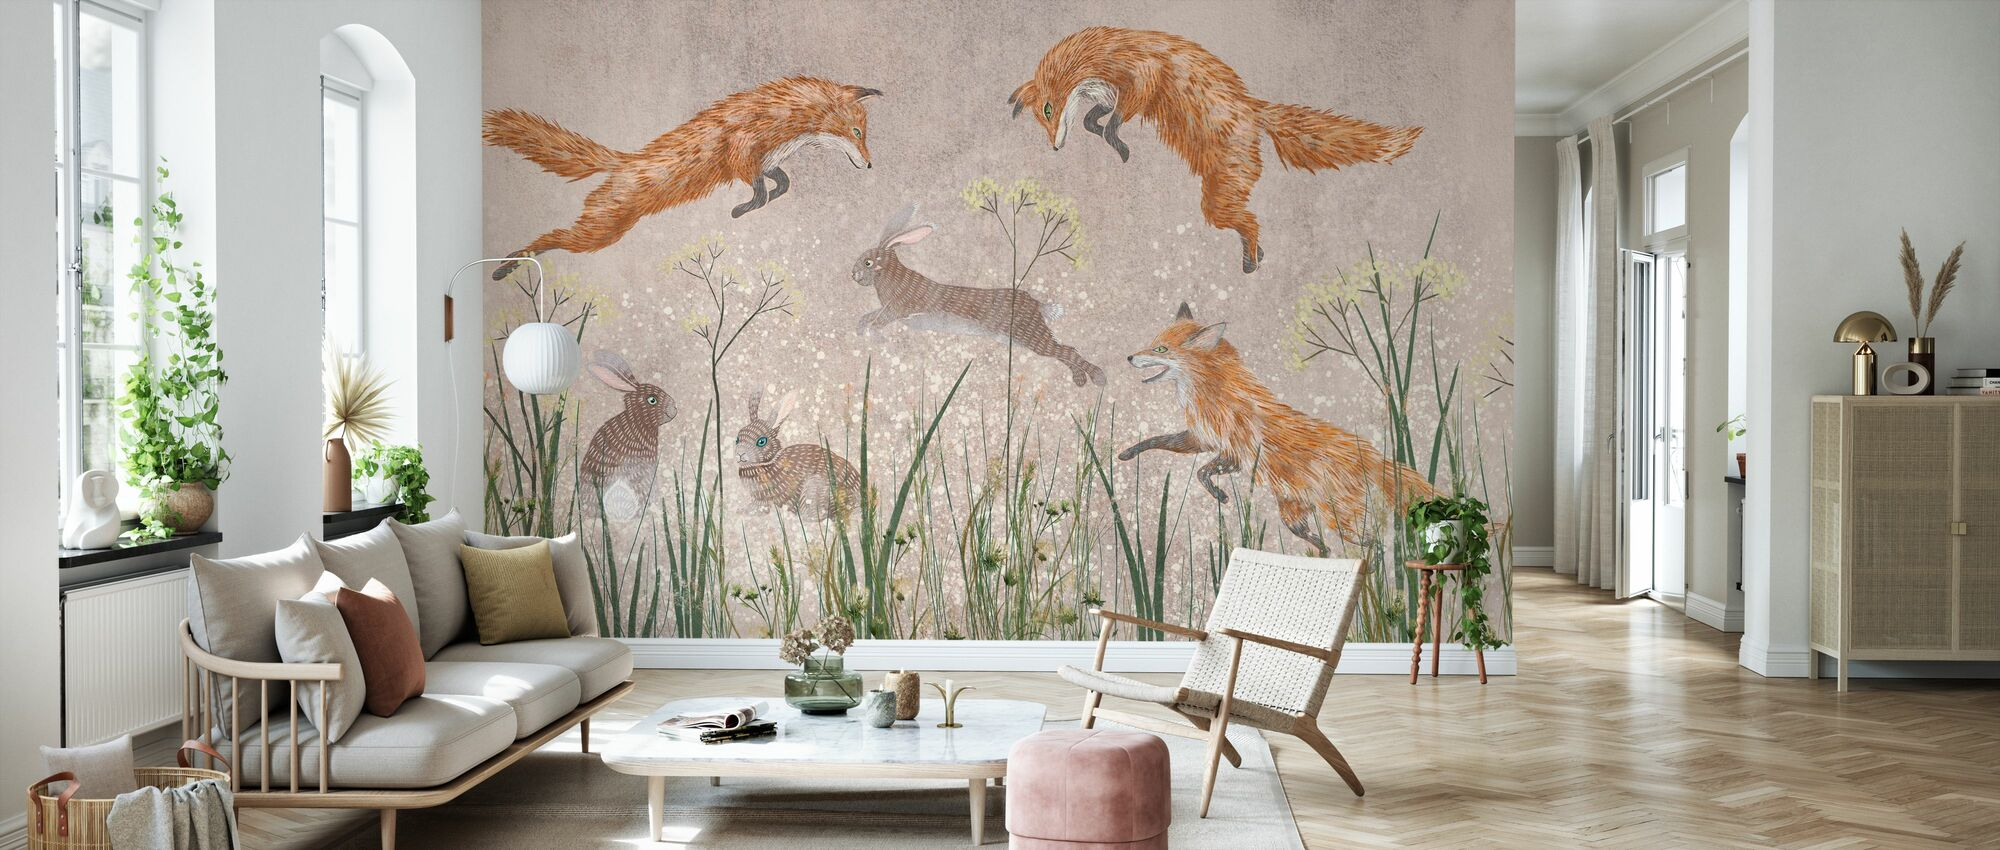 Jumping Foxes II - Wallpaper - Living Room